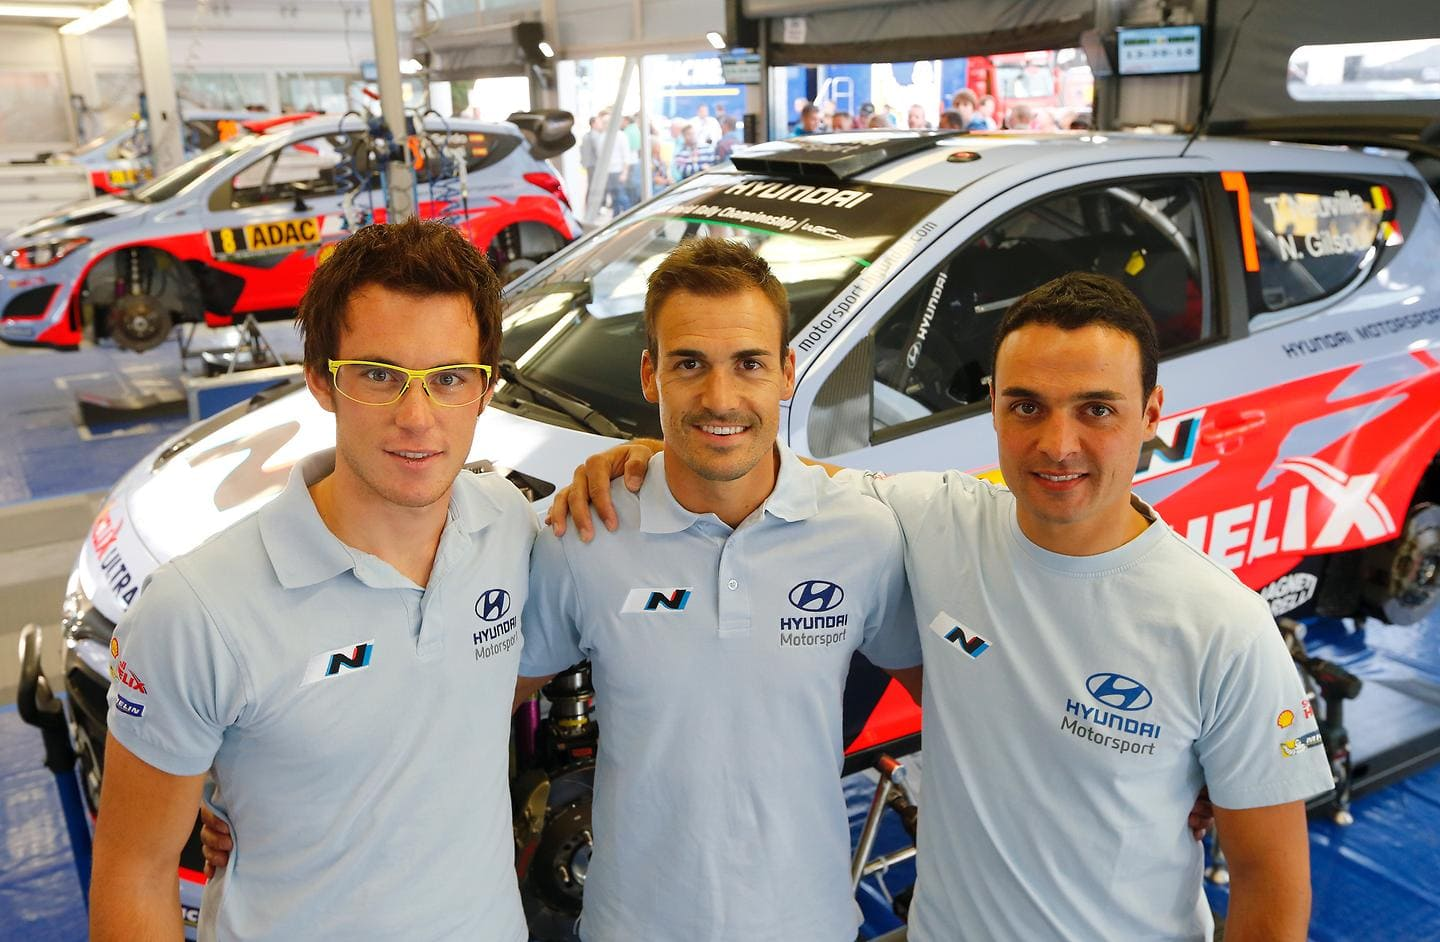 Hyundai Shell World Rally Team confirms driver line up for France and Spain